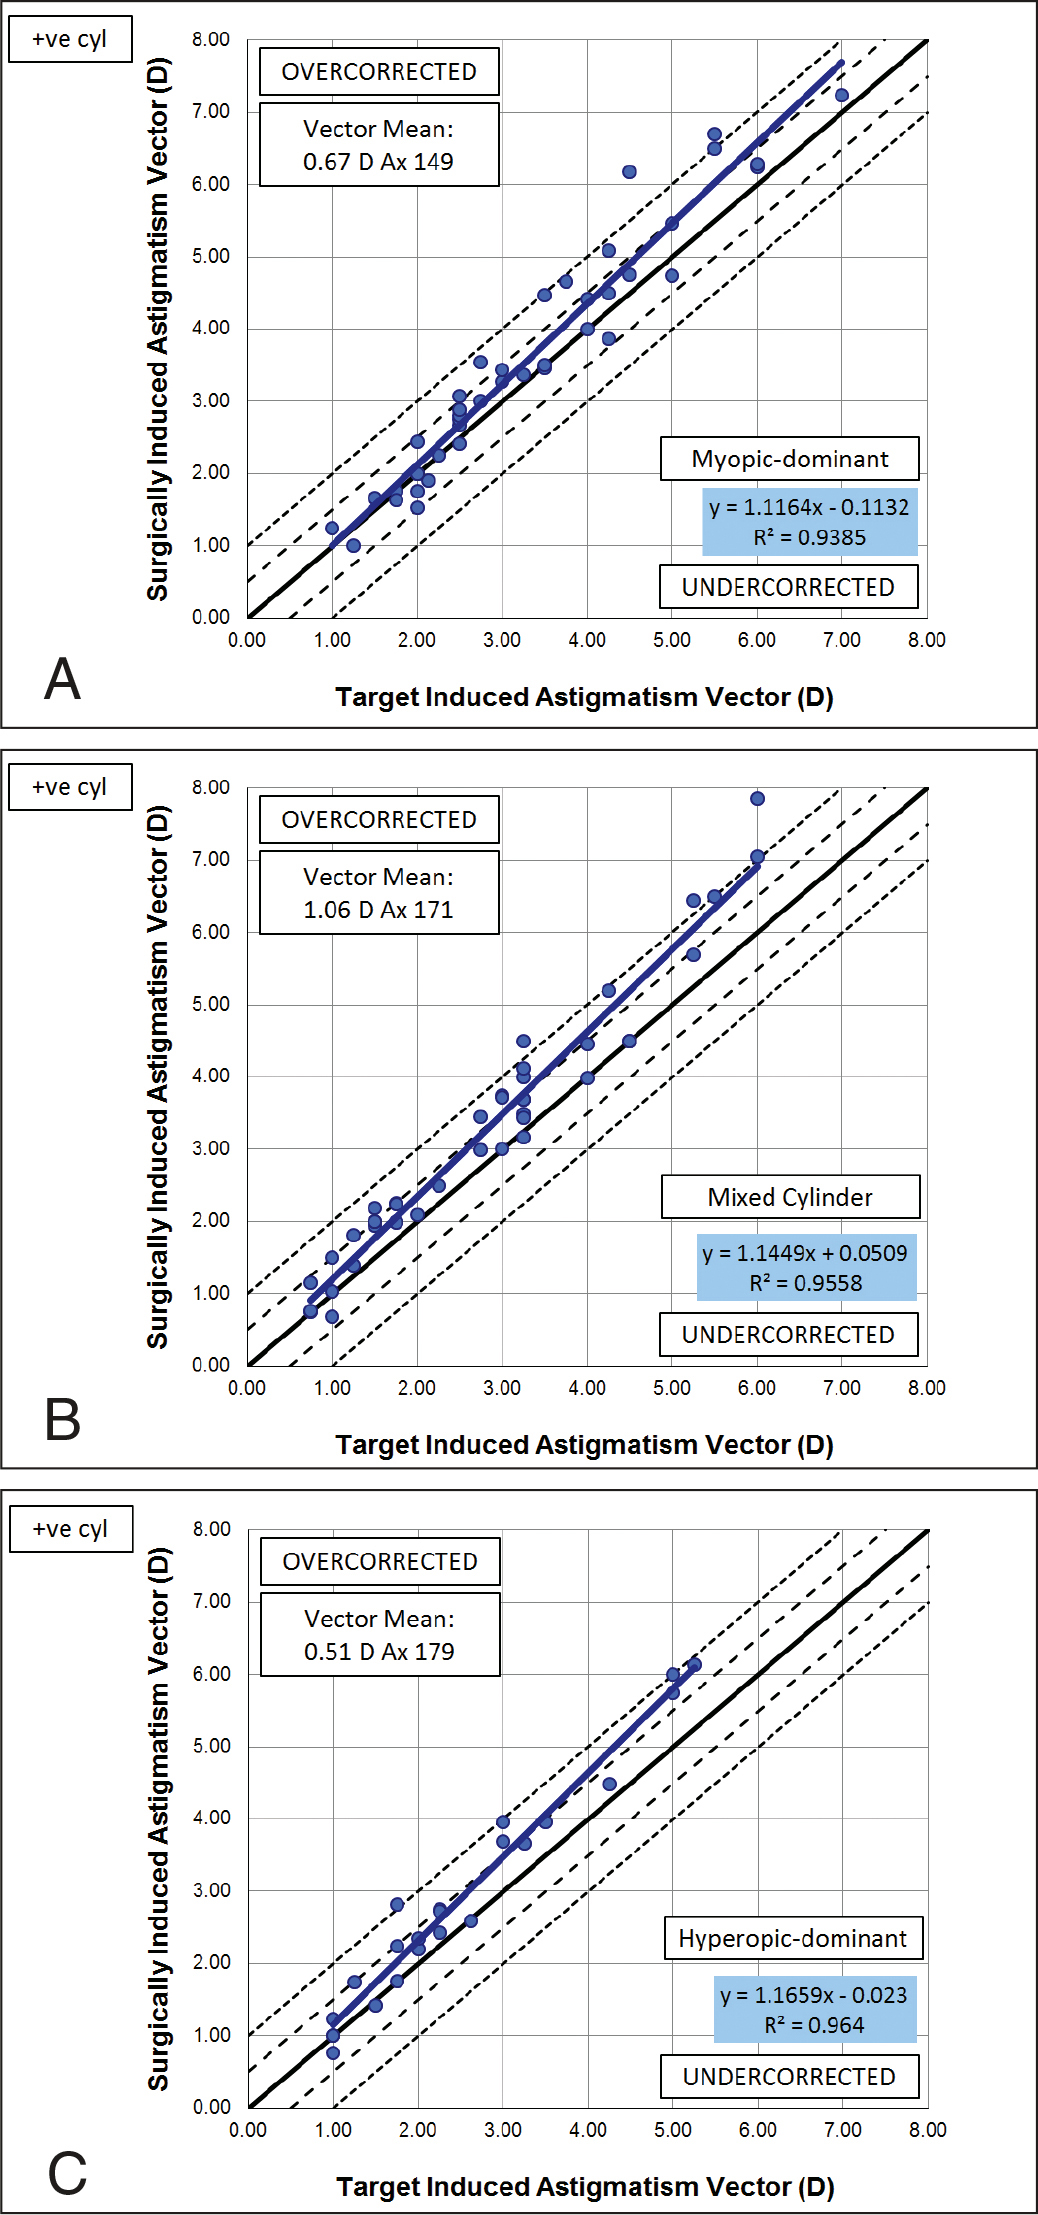 Target induced astigmatism vs surgically induced astigmatism scatter plots for the subgroups of myopic-dominant (n = 41), mixed (n = 41), and hyperopic-dominant (n = 23) mixed astigmatism. The slope of the regression line was higher for the mixed and hyperopic-dominant groups compared to the myopic-dominant group. D = diopters